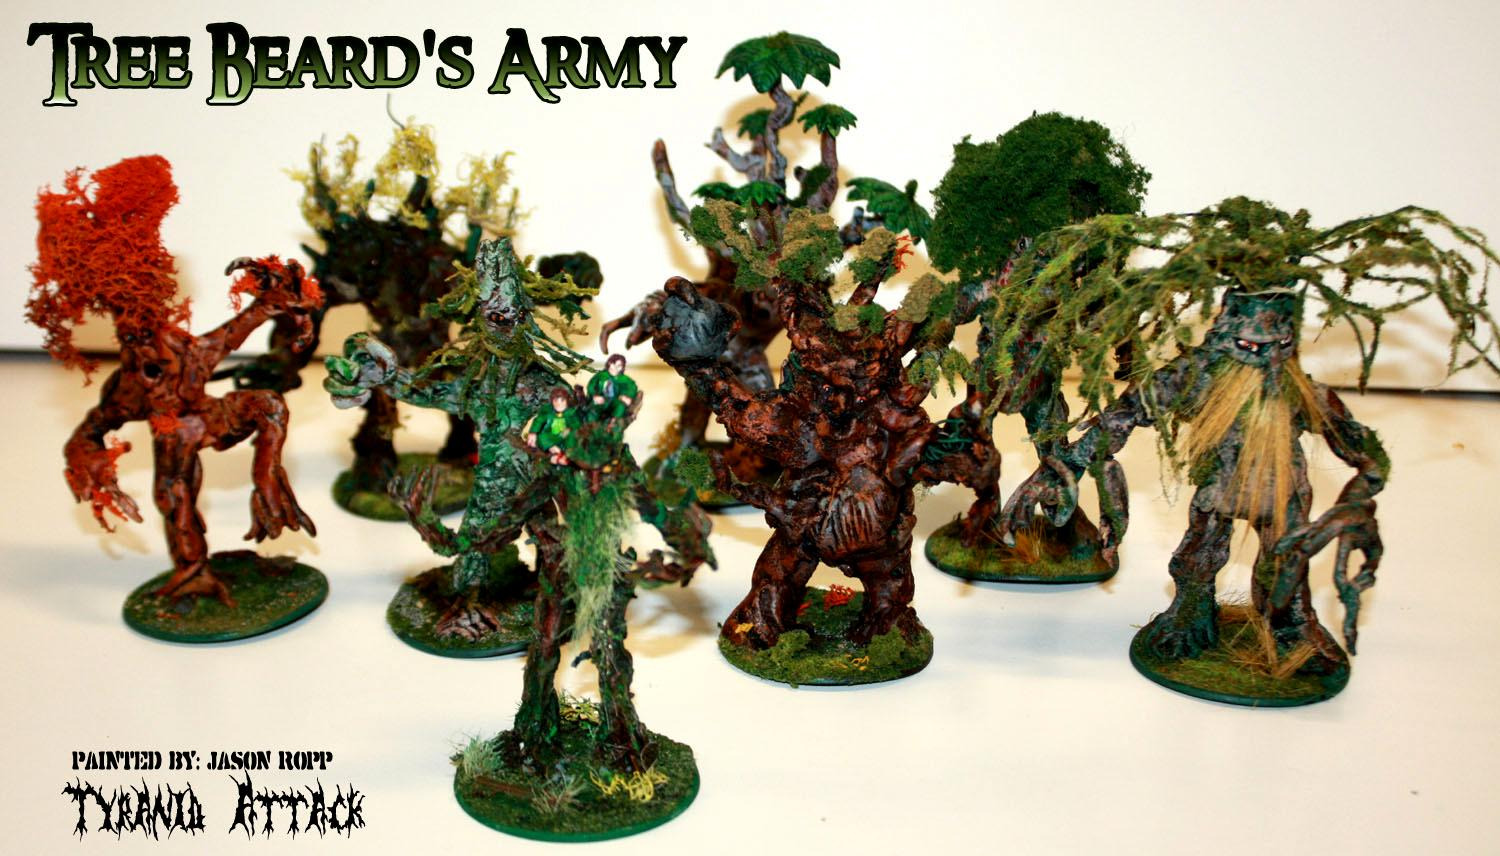 28mm, Battle, Conversion, Custoim, Ent, Ents, Force, Forces, Good, Hobbit, Lord, Miniature, Of, Rings, The, Treebeard